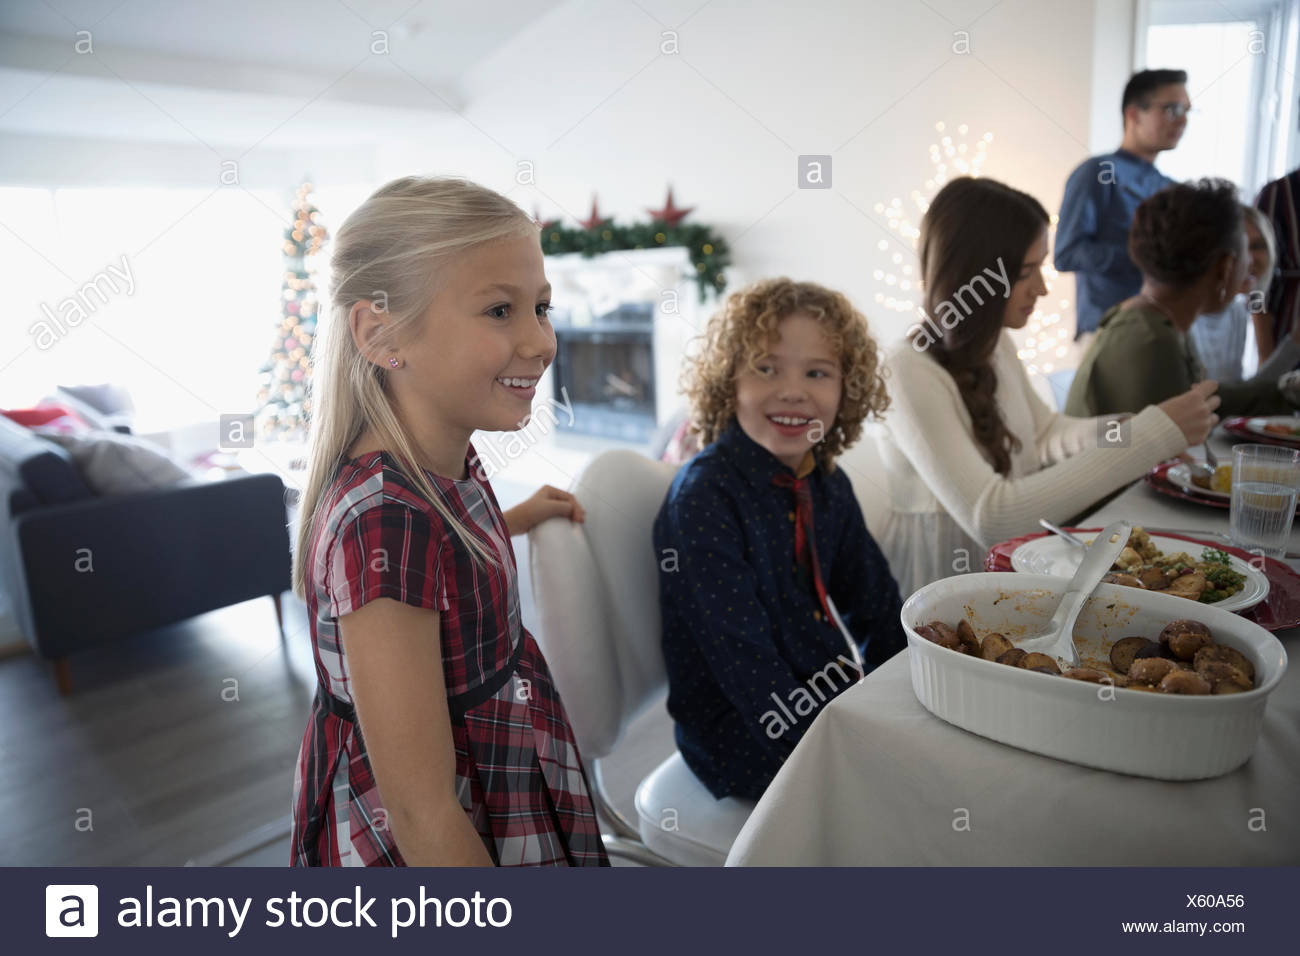 Brother and sister enjoying family Christmas dinner at table - Stock Image